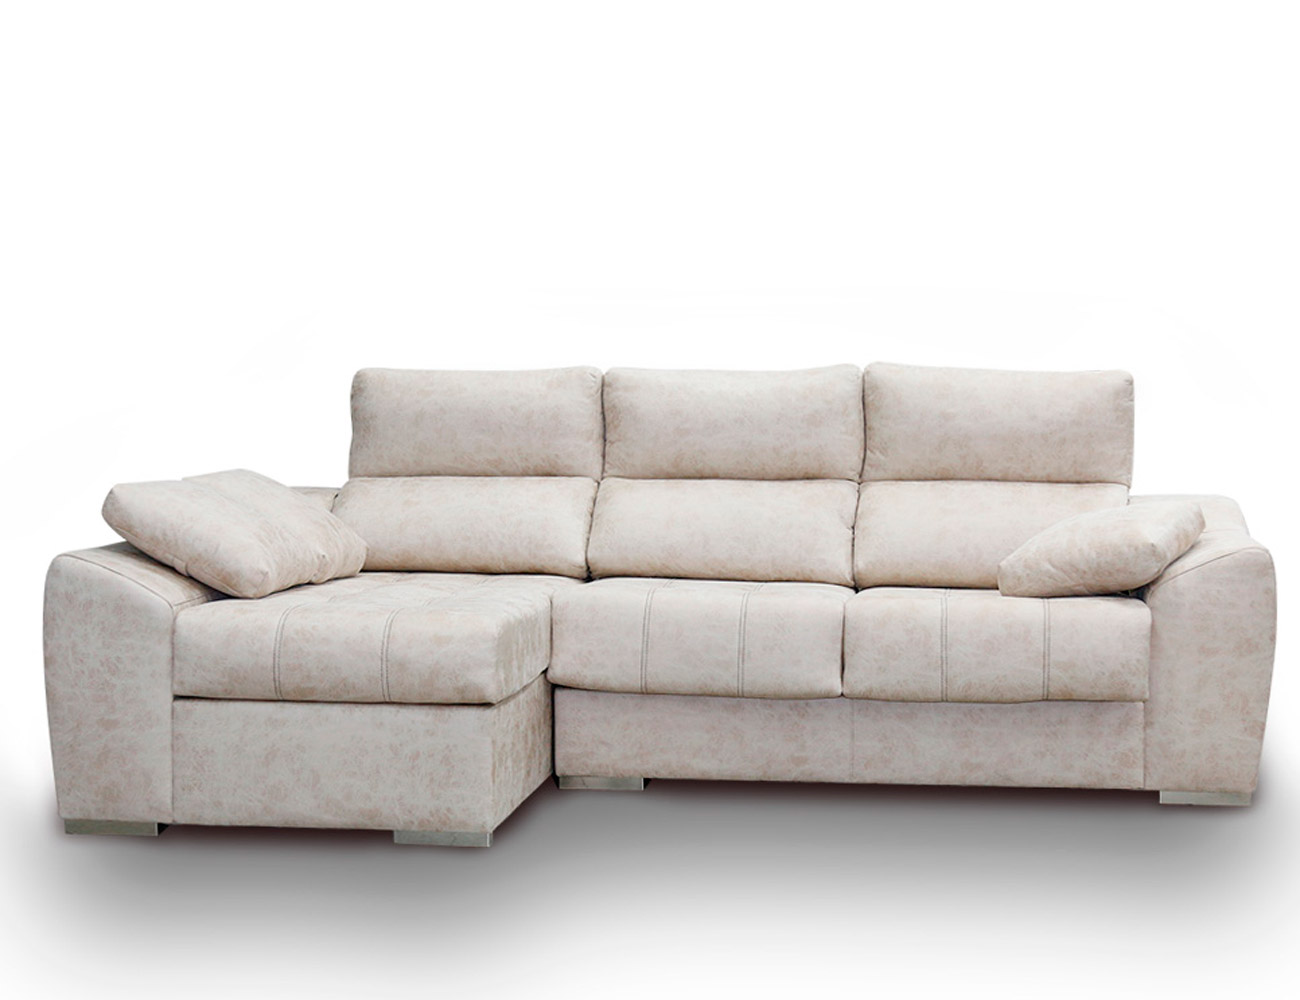 Sofa chaiselongue anti manchas beig blanco